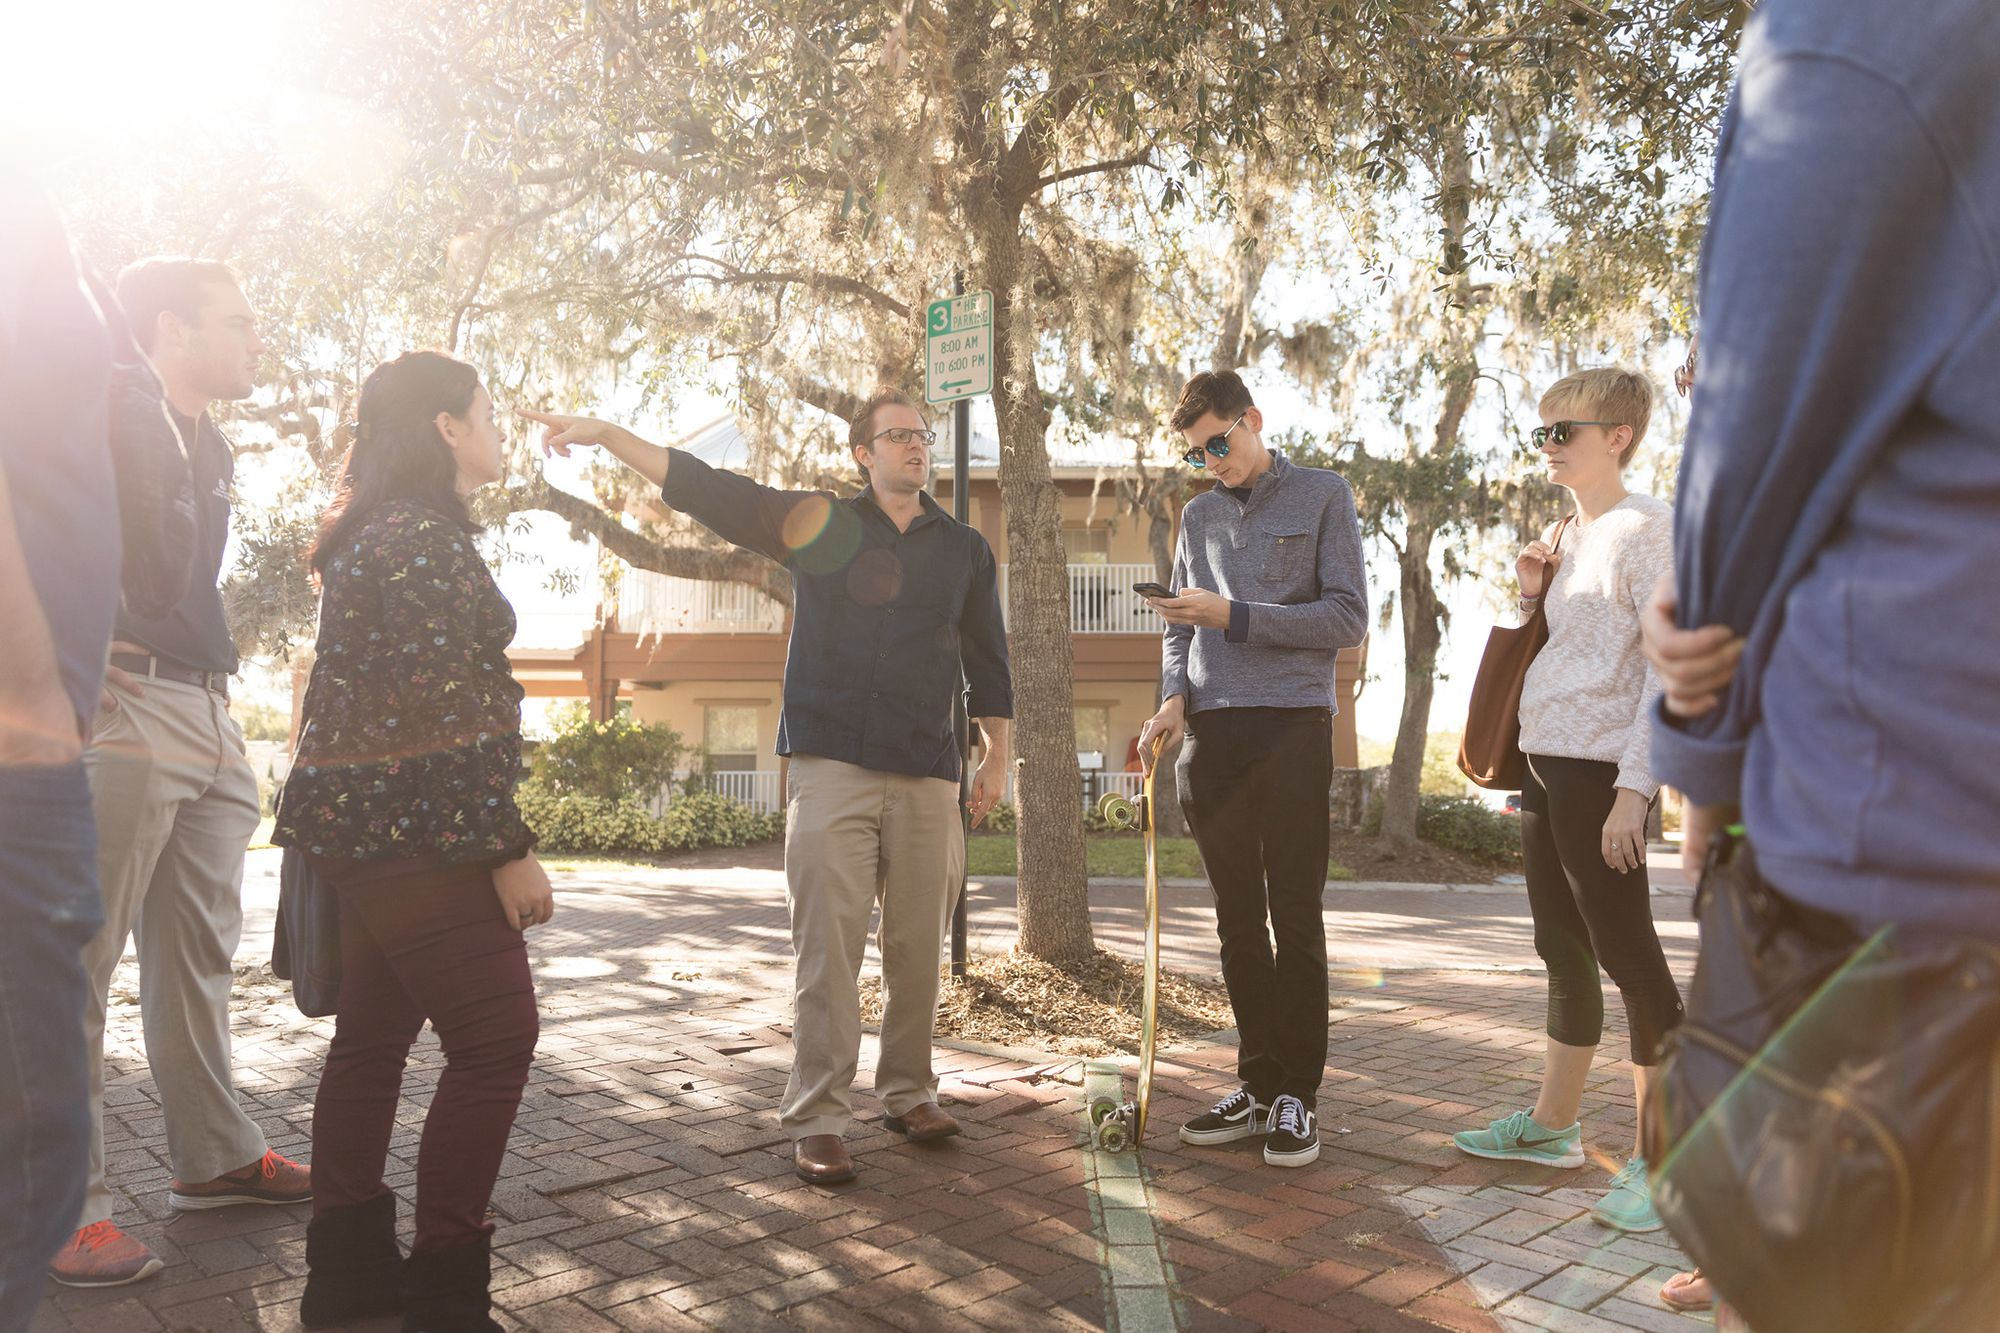 Professor Dan Myers standing on a brick sidewalk pointing to a point of interest while leading students on a digital tour.